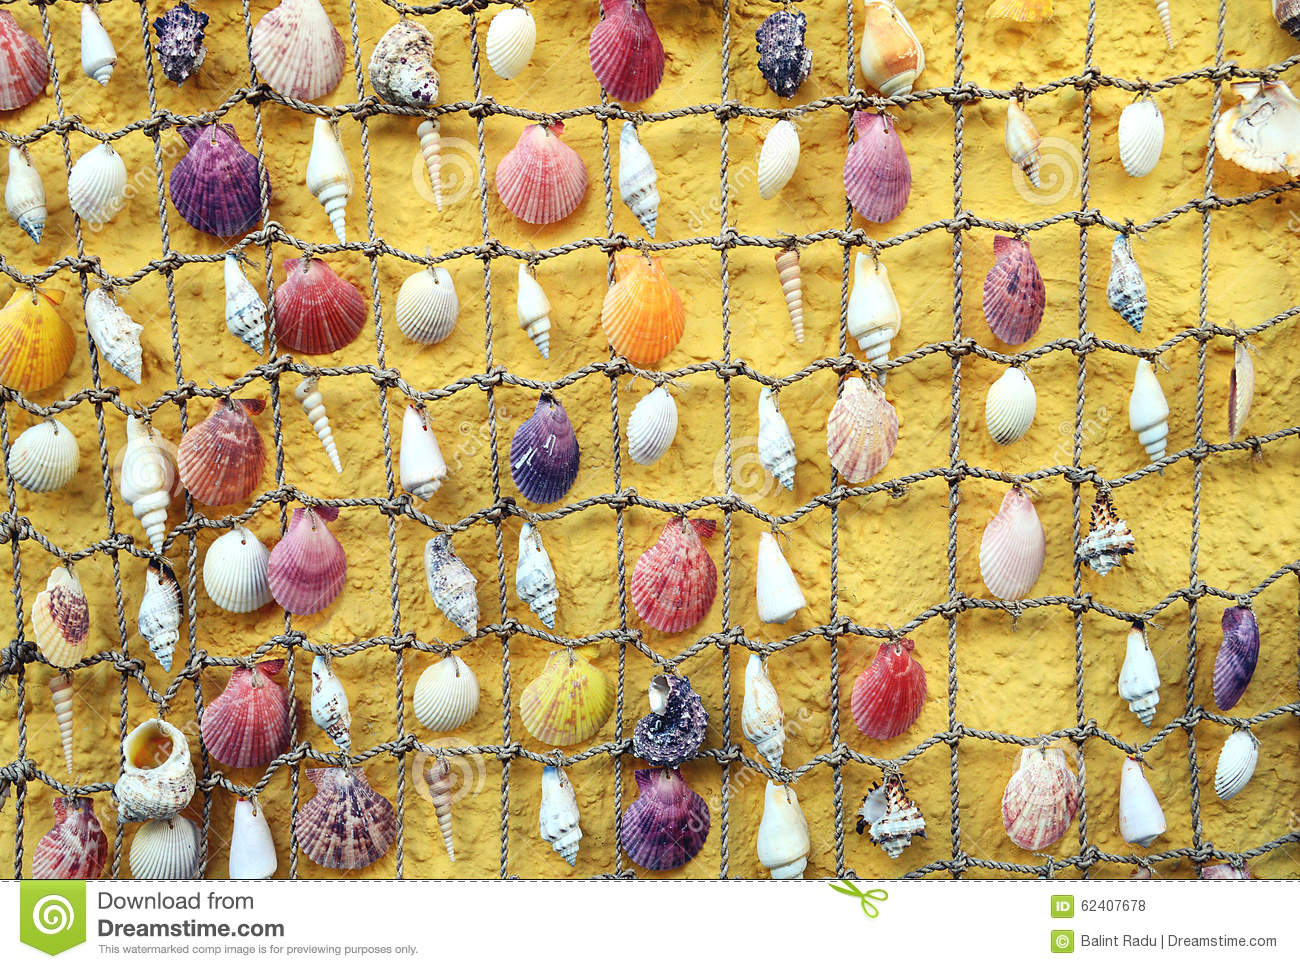 Shells hanging on the rope stock photo. Image of rope - 62407678